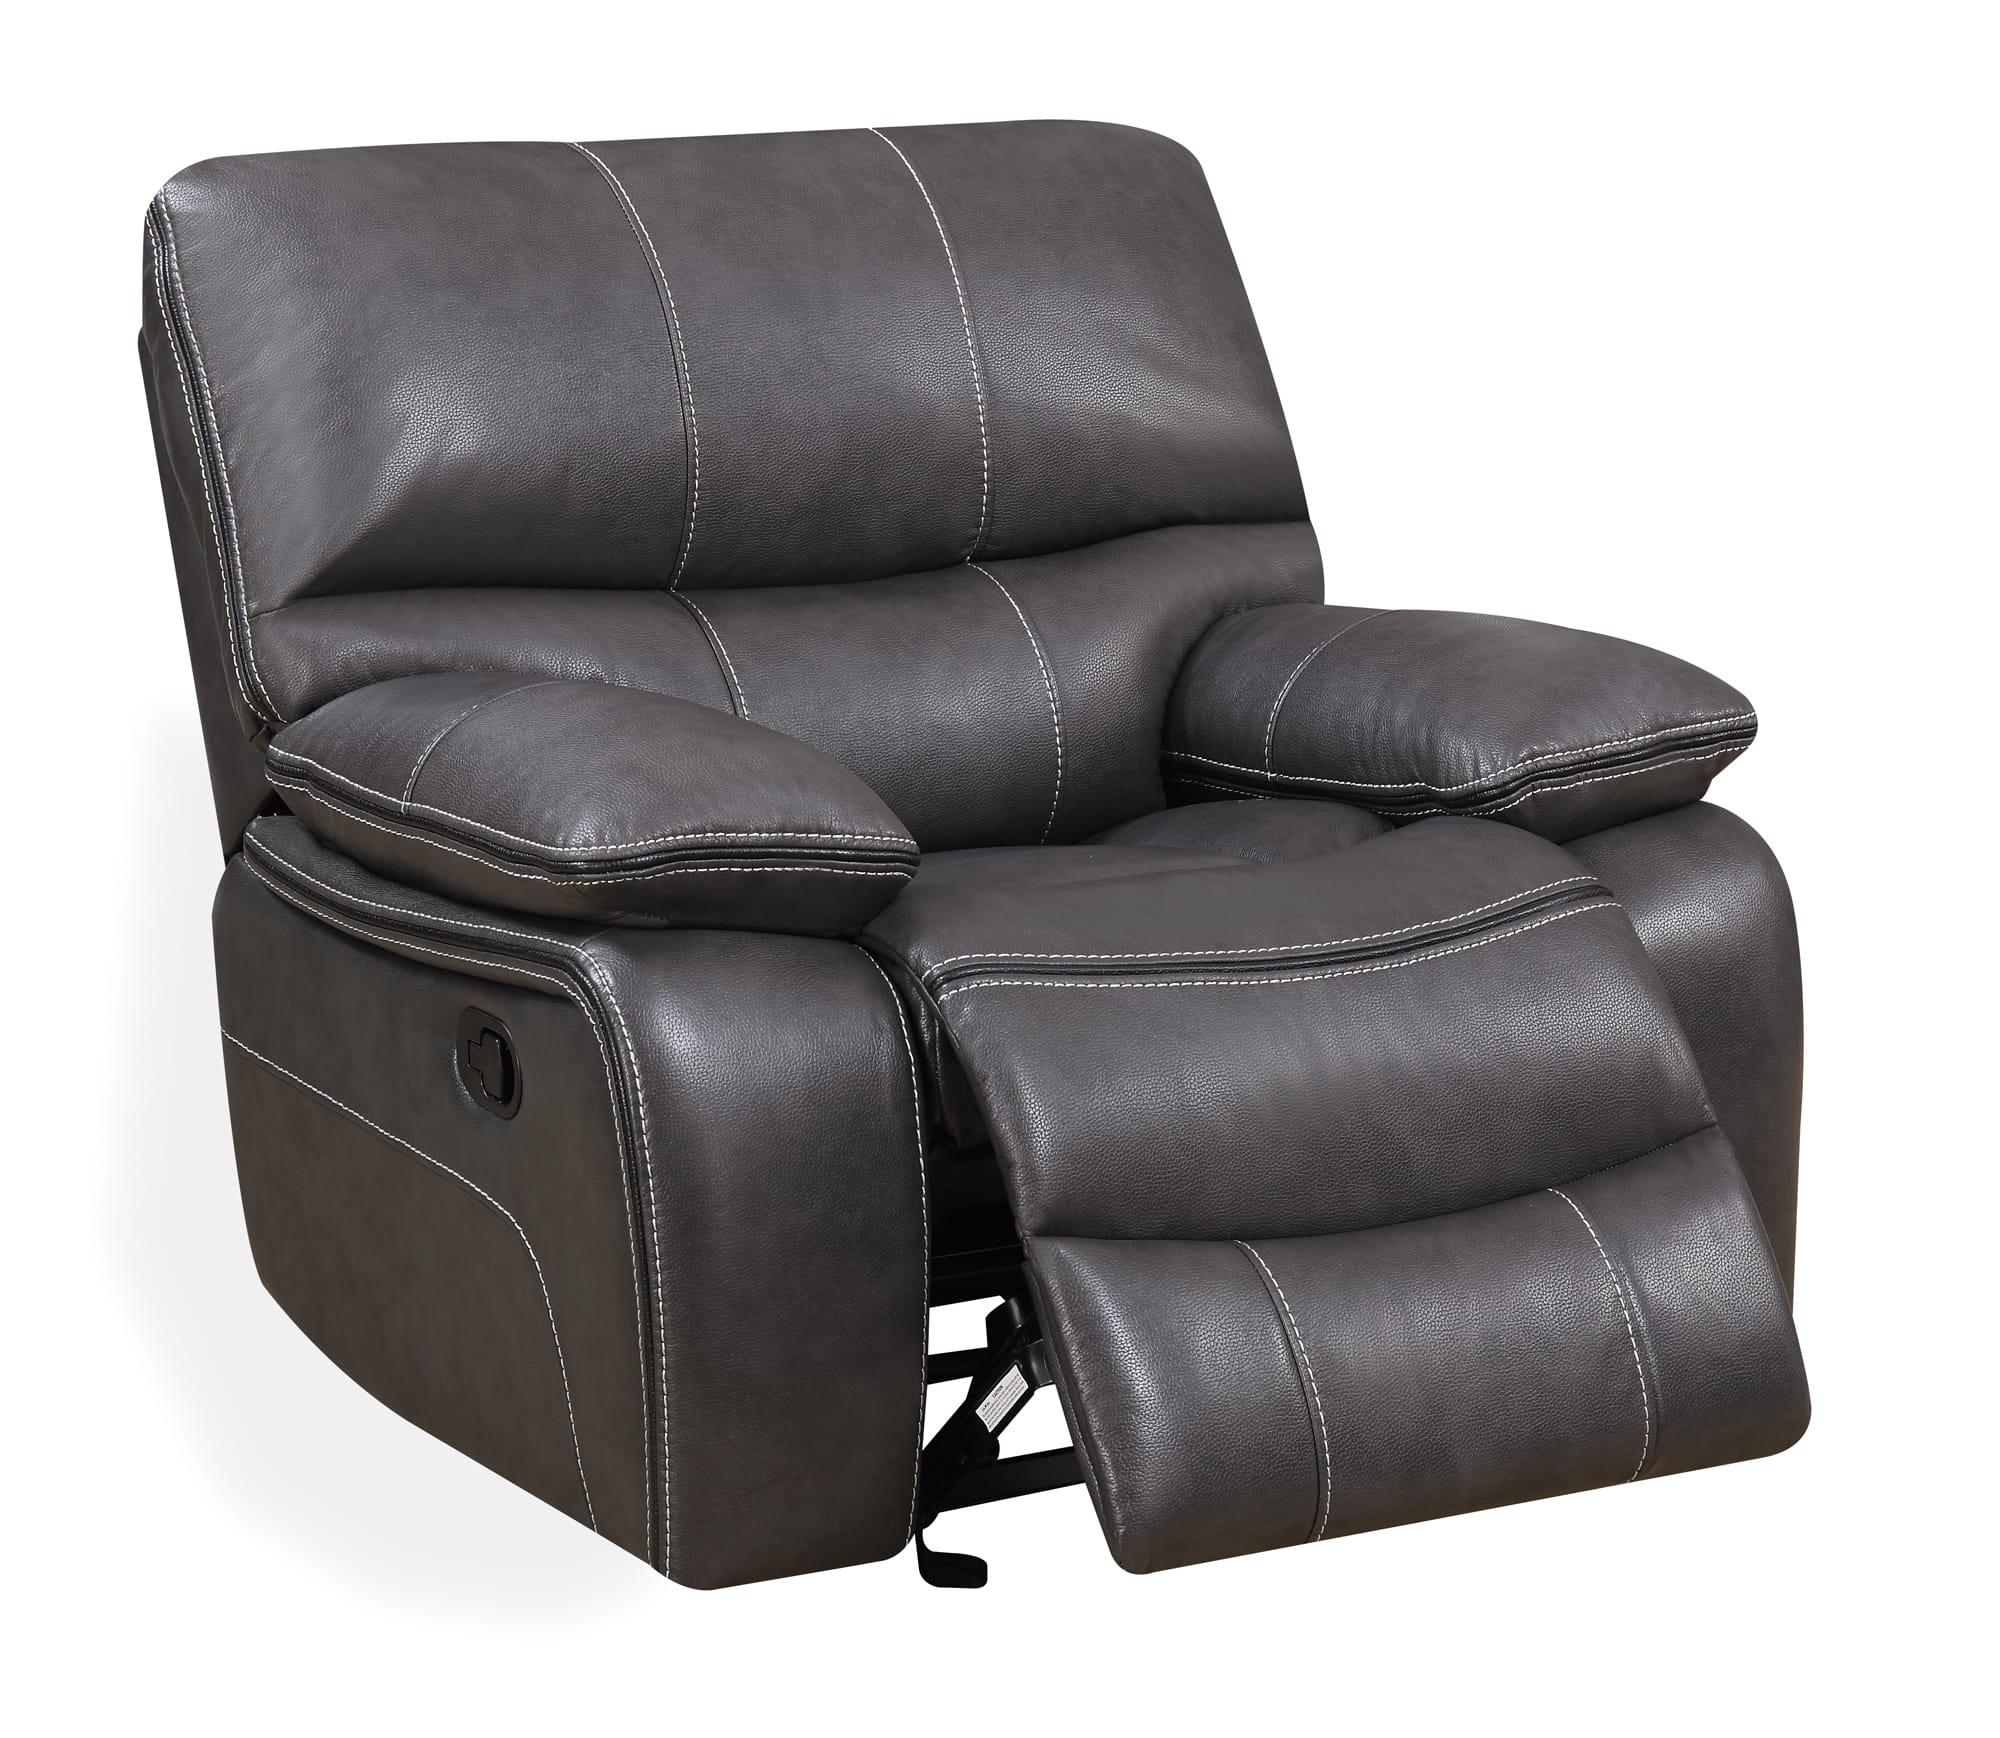 glider recliner chair toys r us nursing u0040 grey black leather reclining by global